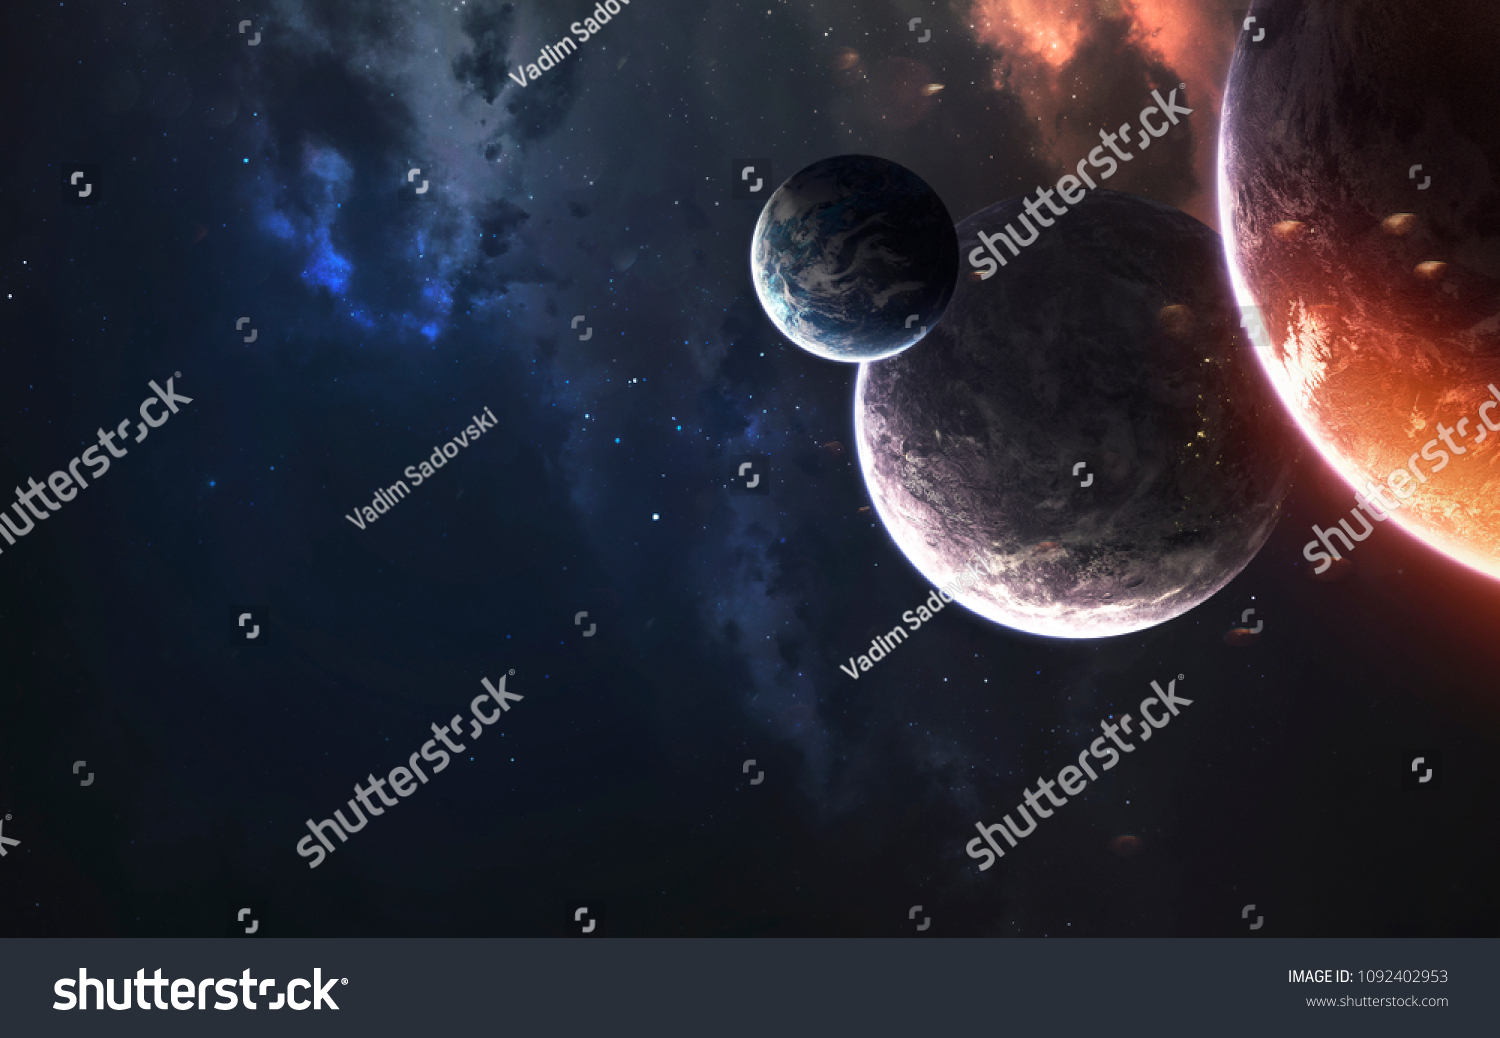 Deep space planets, awesome science fiction wallpaper, cosmic landscape. Elements of this image furnished by NASA #1092402953